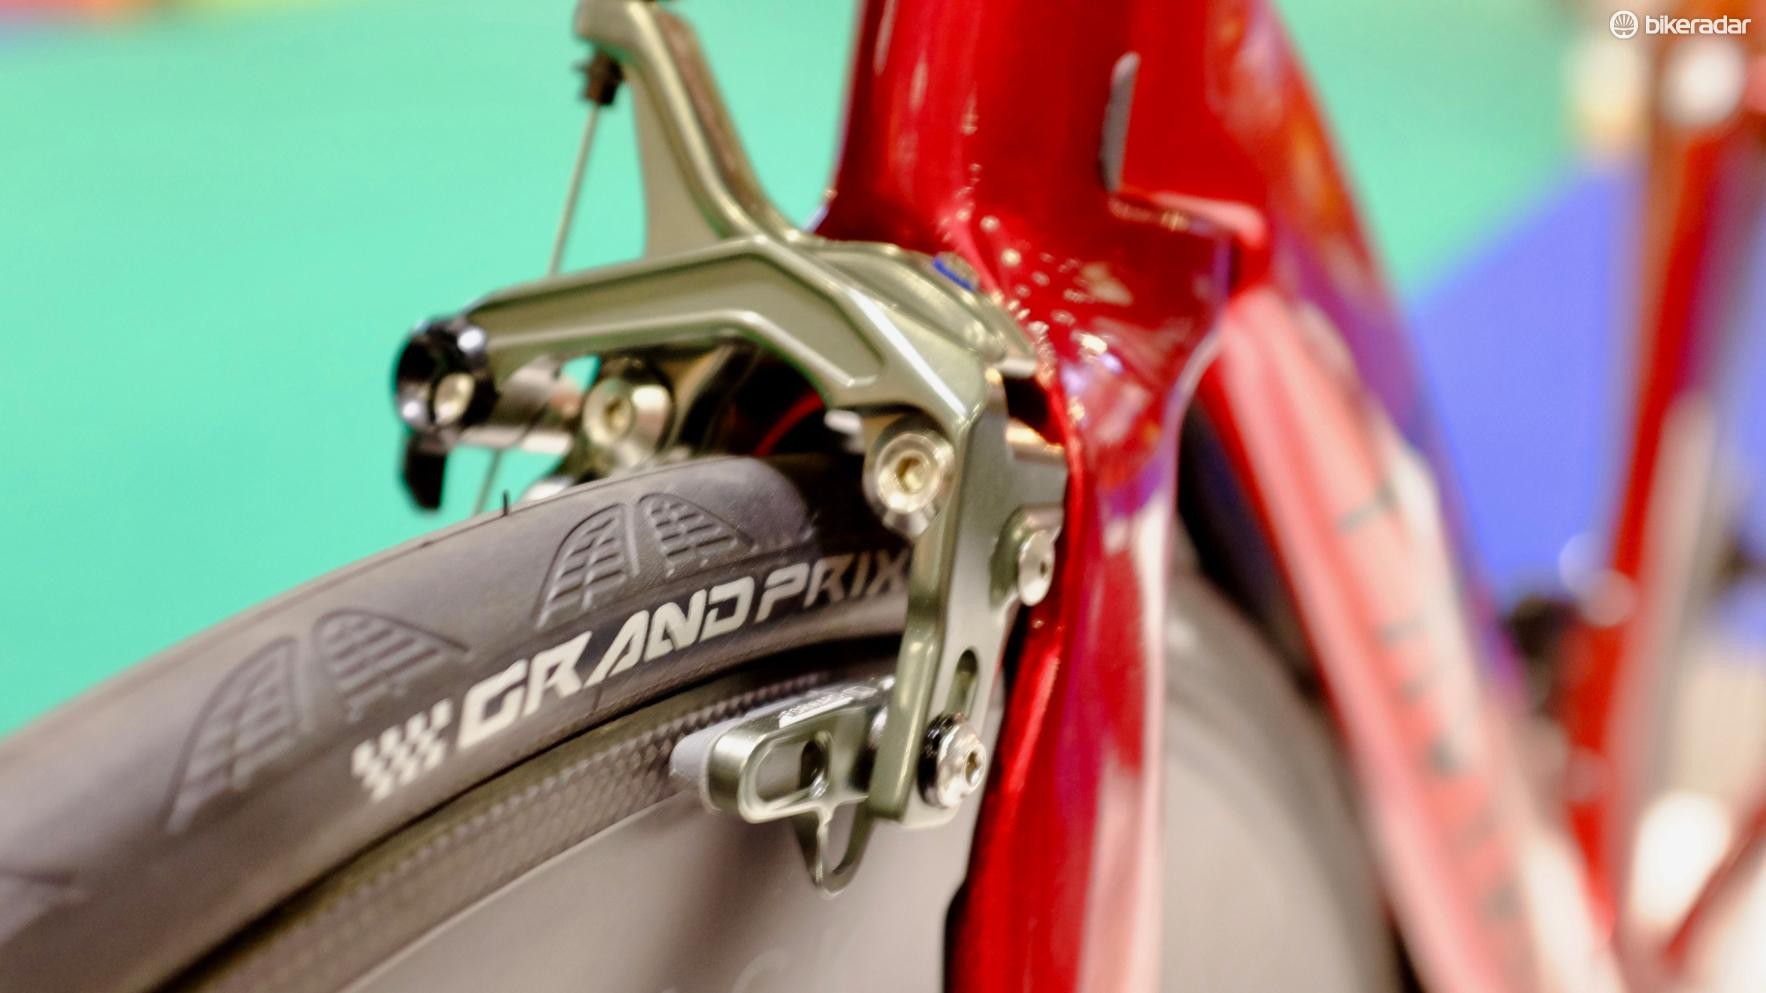 TRP direct-mount brakes look the business